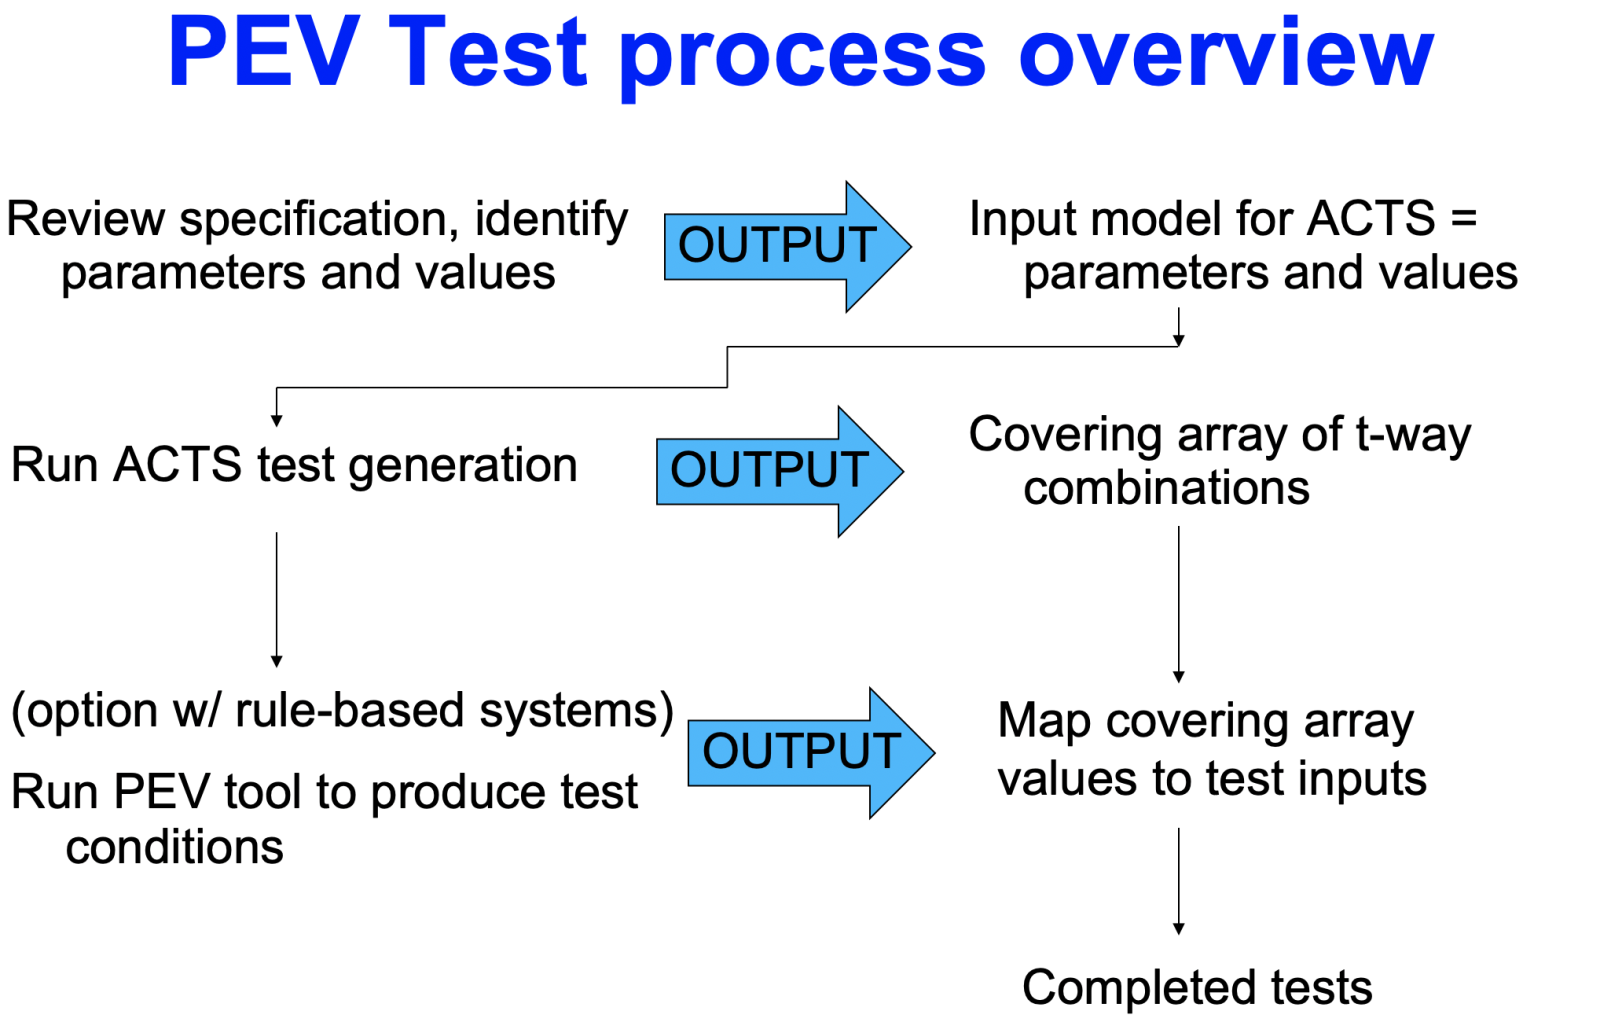 PEV test process overview